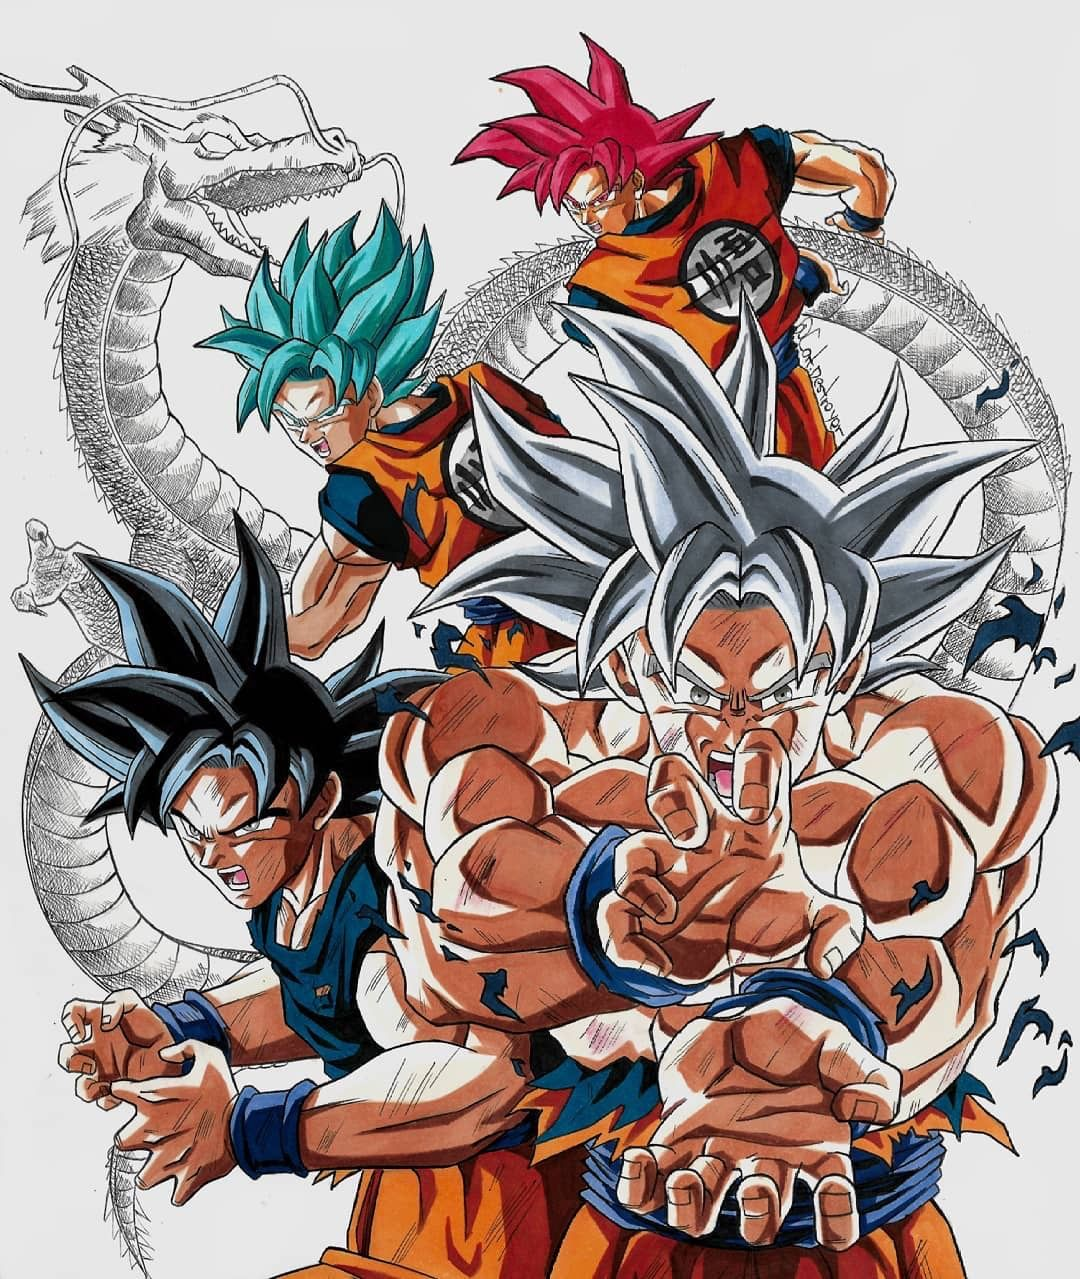 Goku Y Sus Transformaciones De Dragon Ball Super Dragon Ball Gt Personajes De Dragon Ball Personajes De Goku